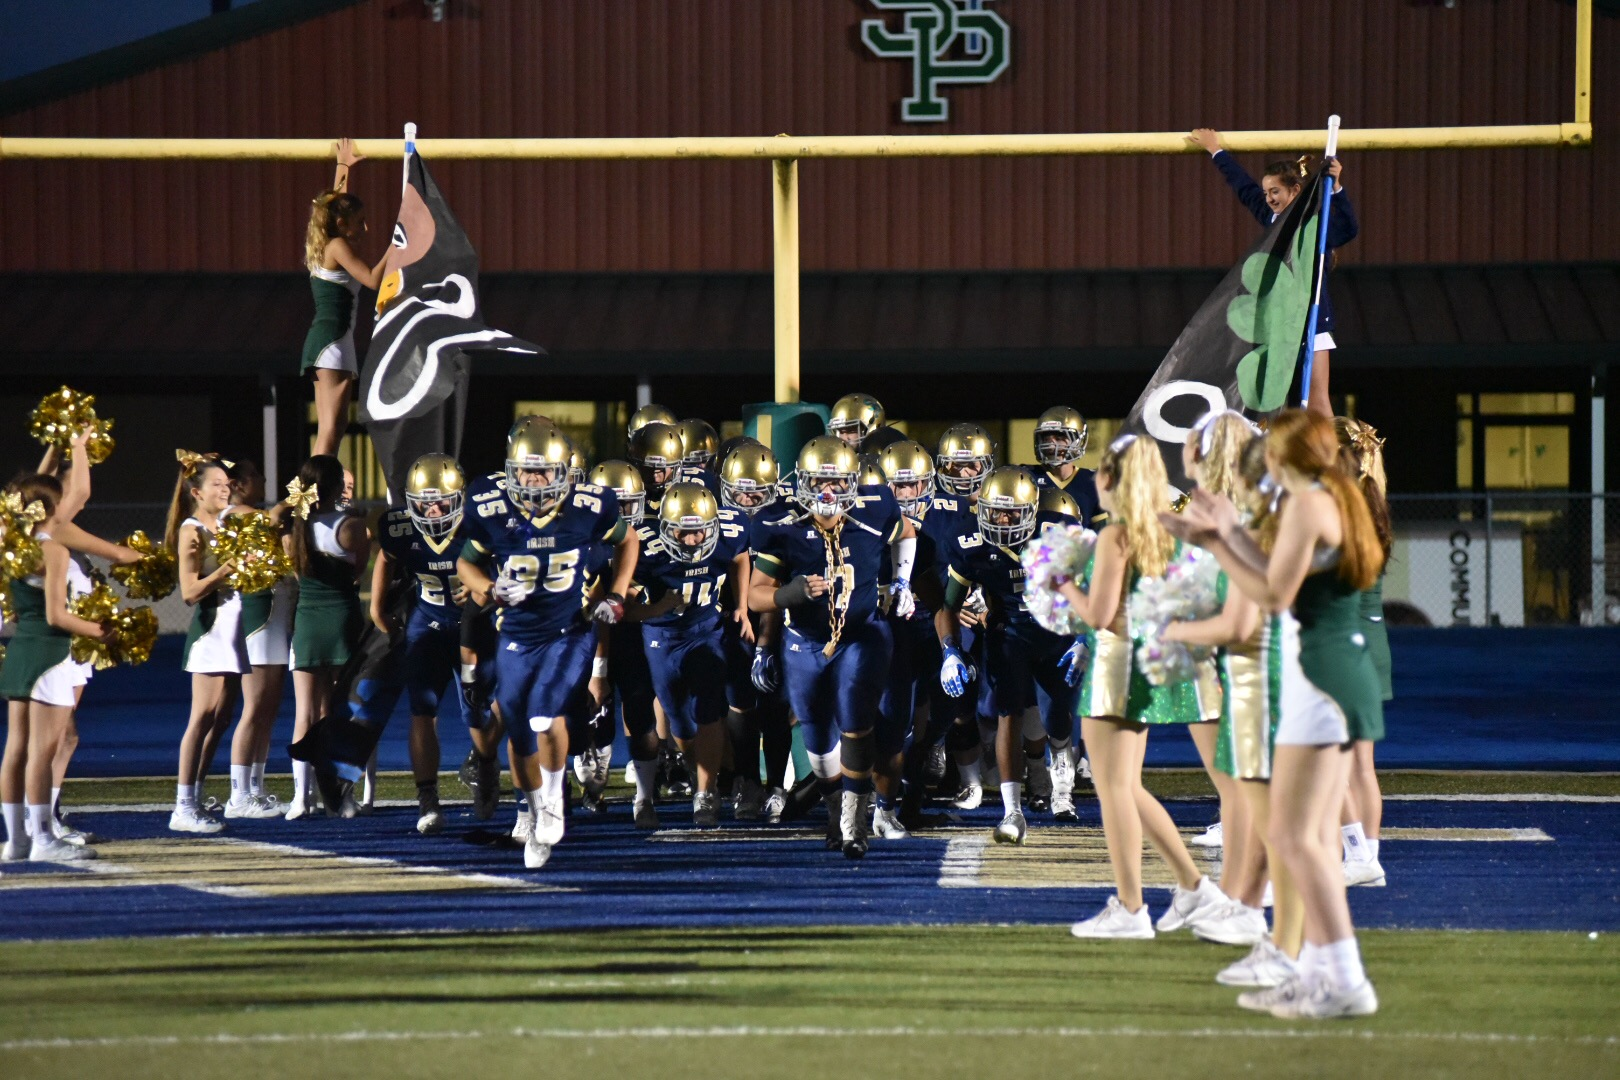 St. Patrick vs. North Forrest Varsity Football game